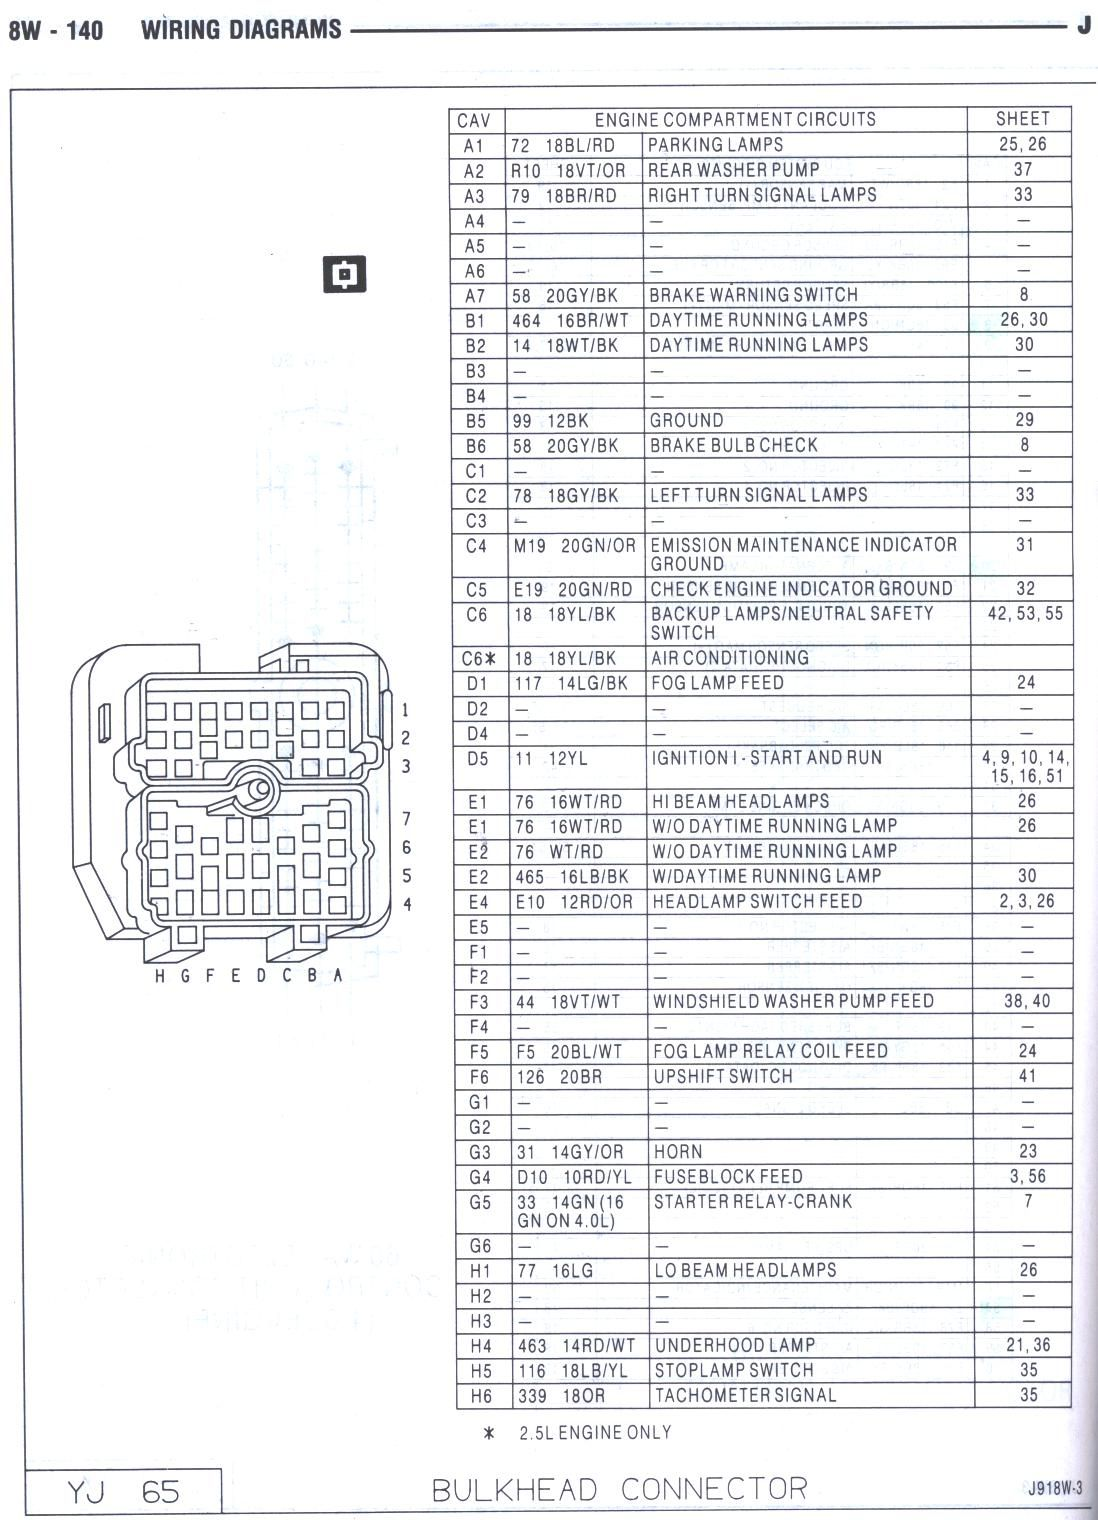 medium resolution of 87 jeep yj wiring diagram 87 yj bulkhead wiring diagram http www